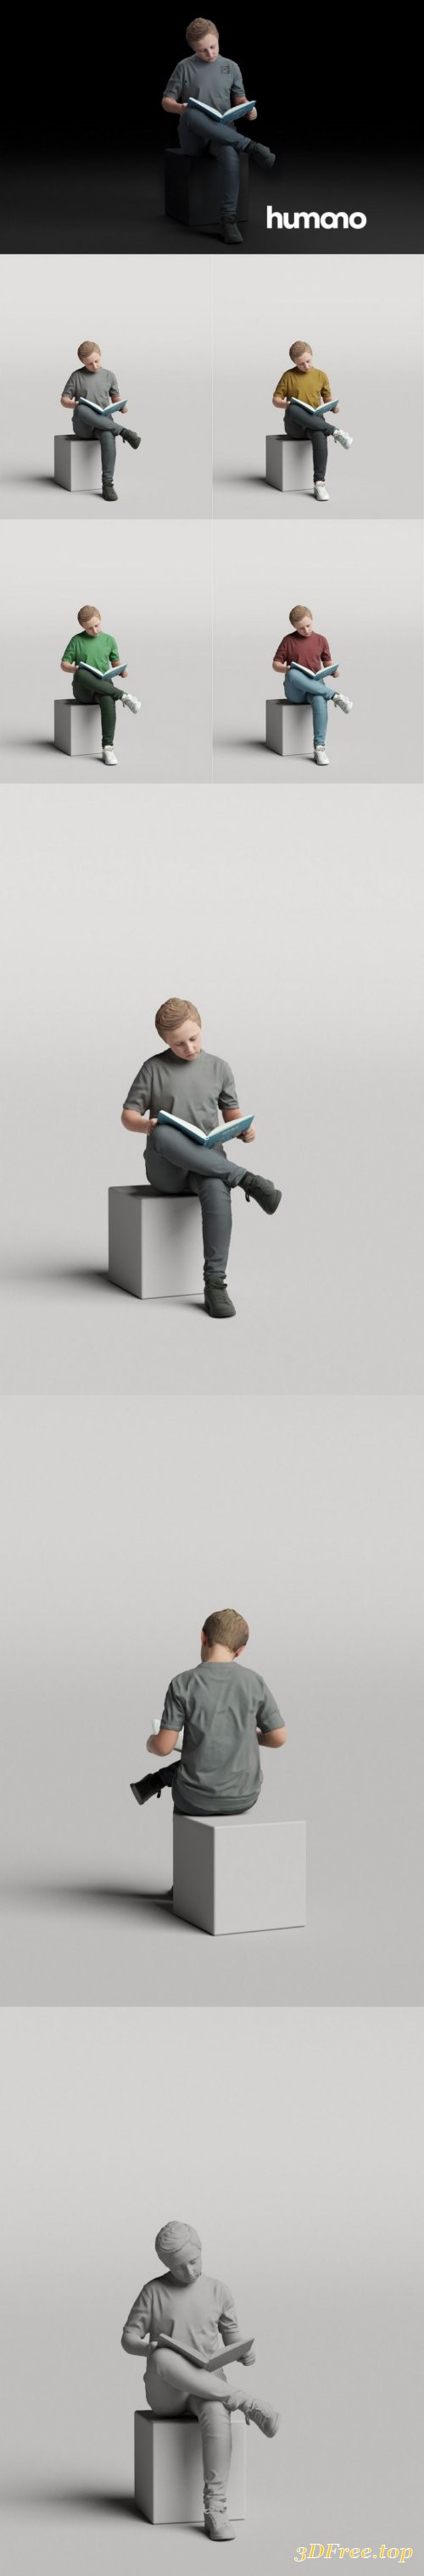 Humano Boy sitting and reading a book 0511 3D model